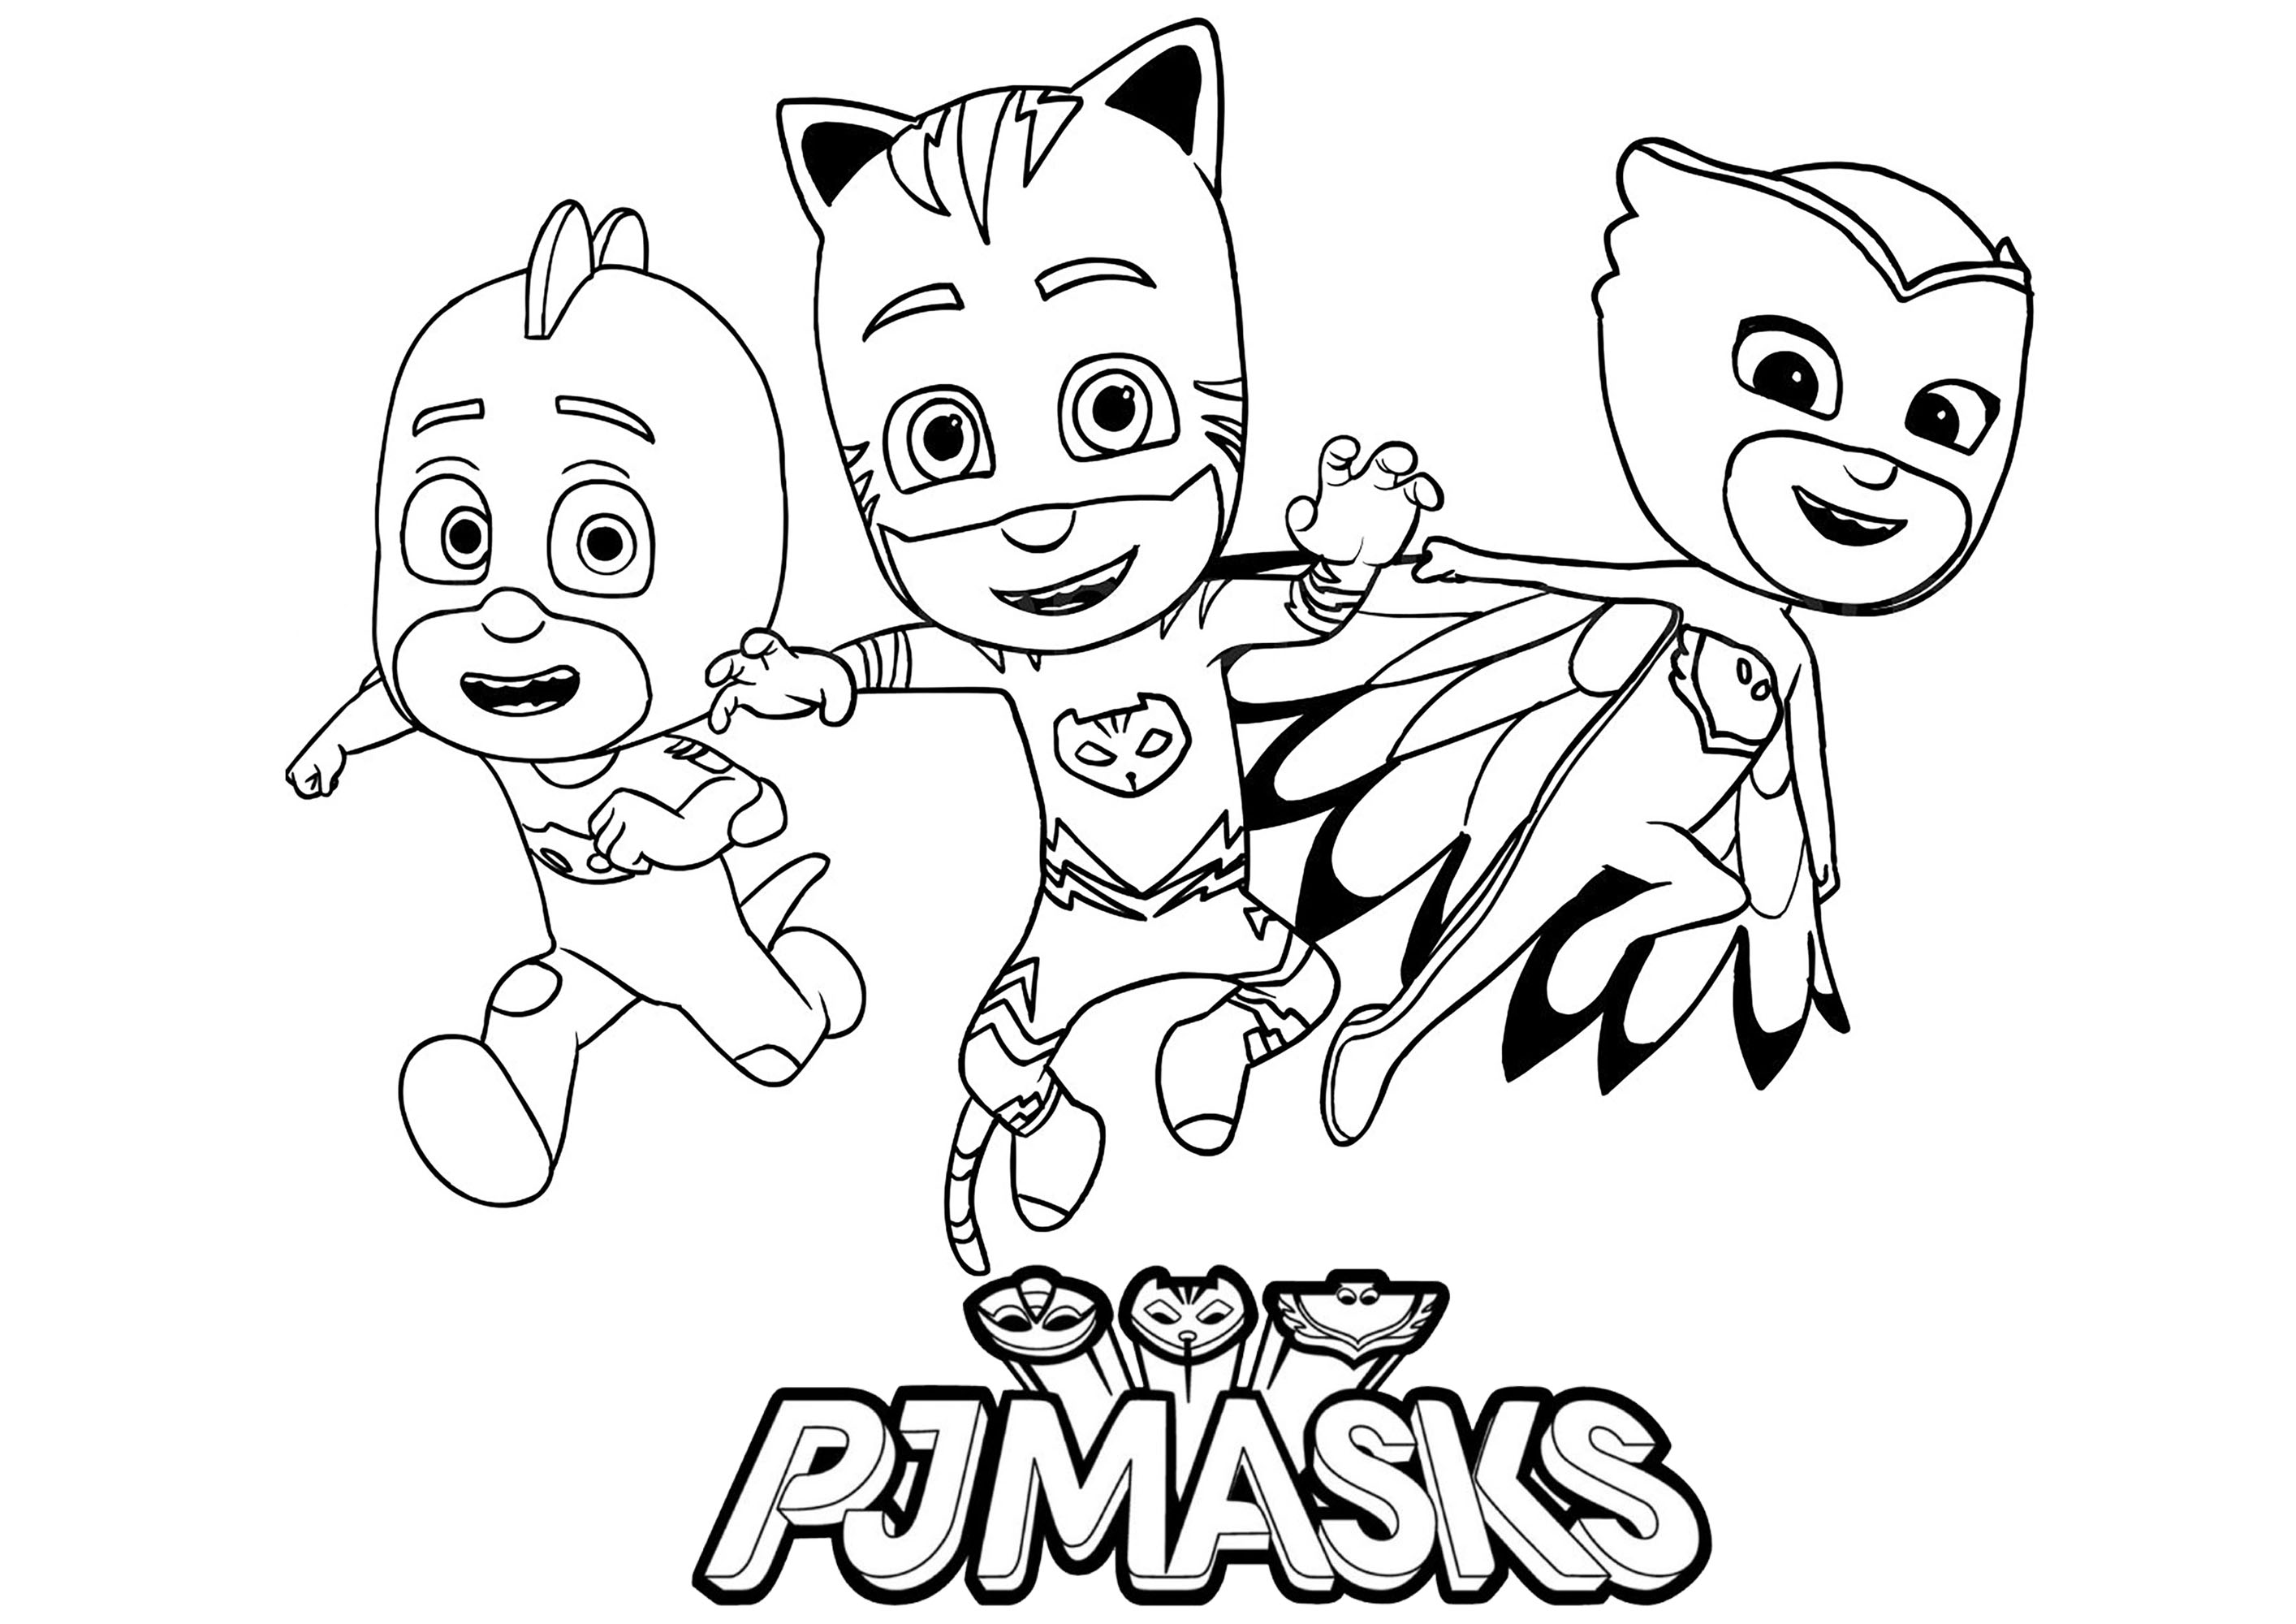 net coloring pages for kids - photo#34